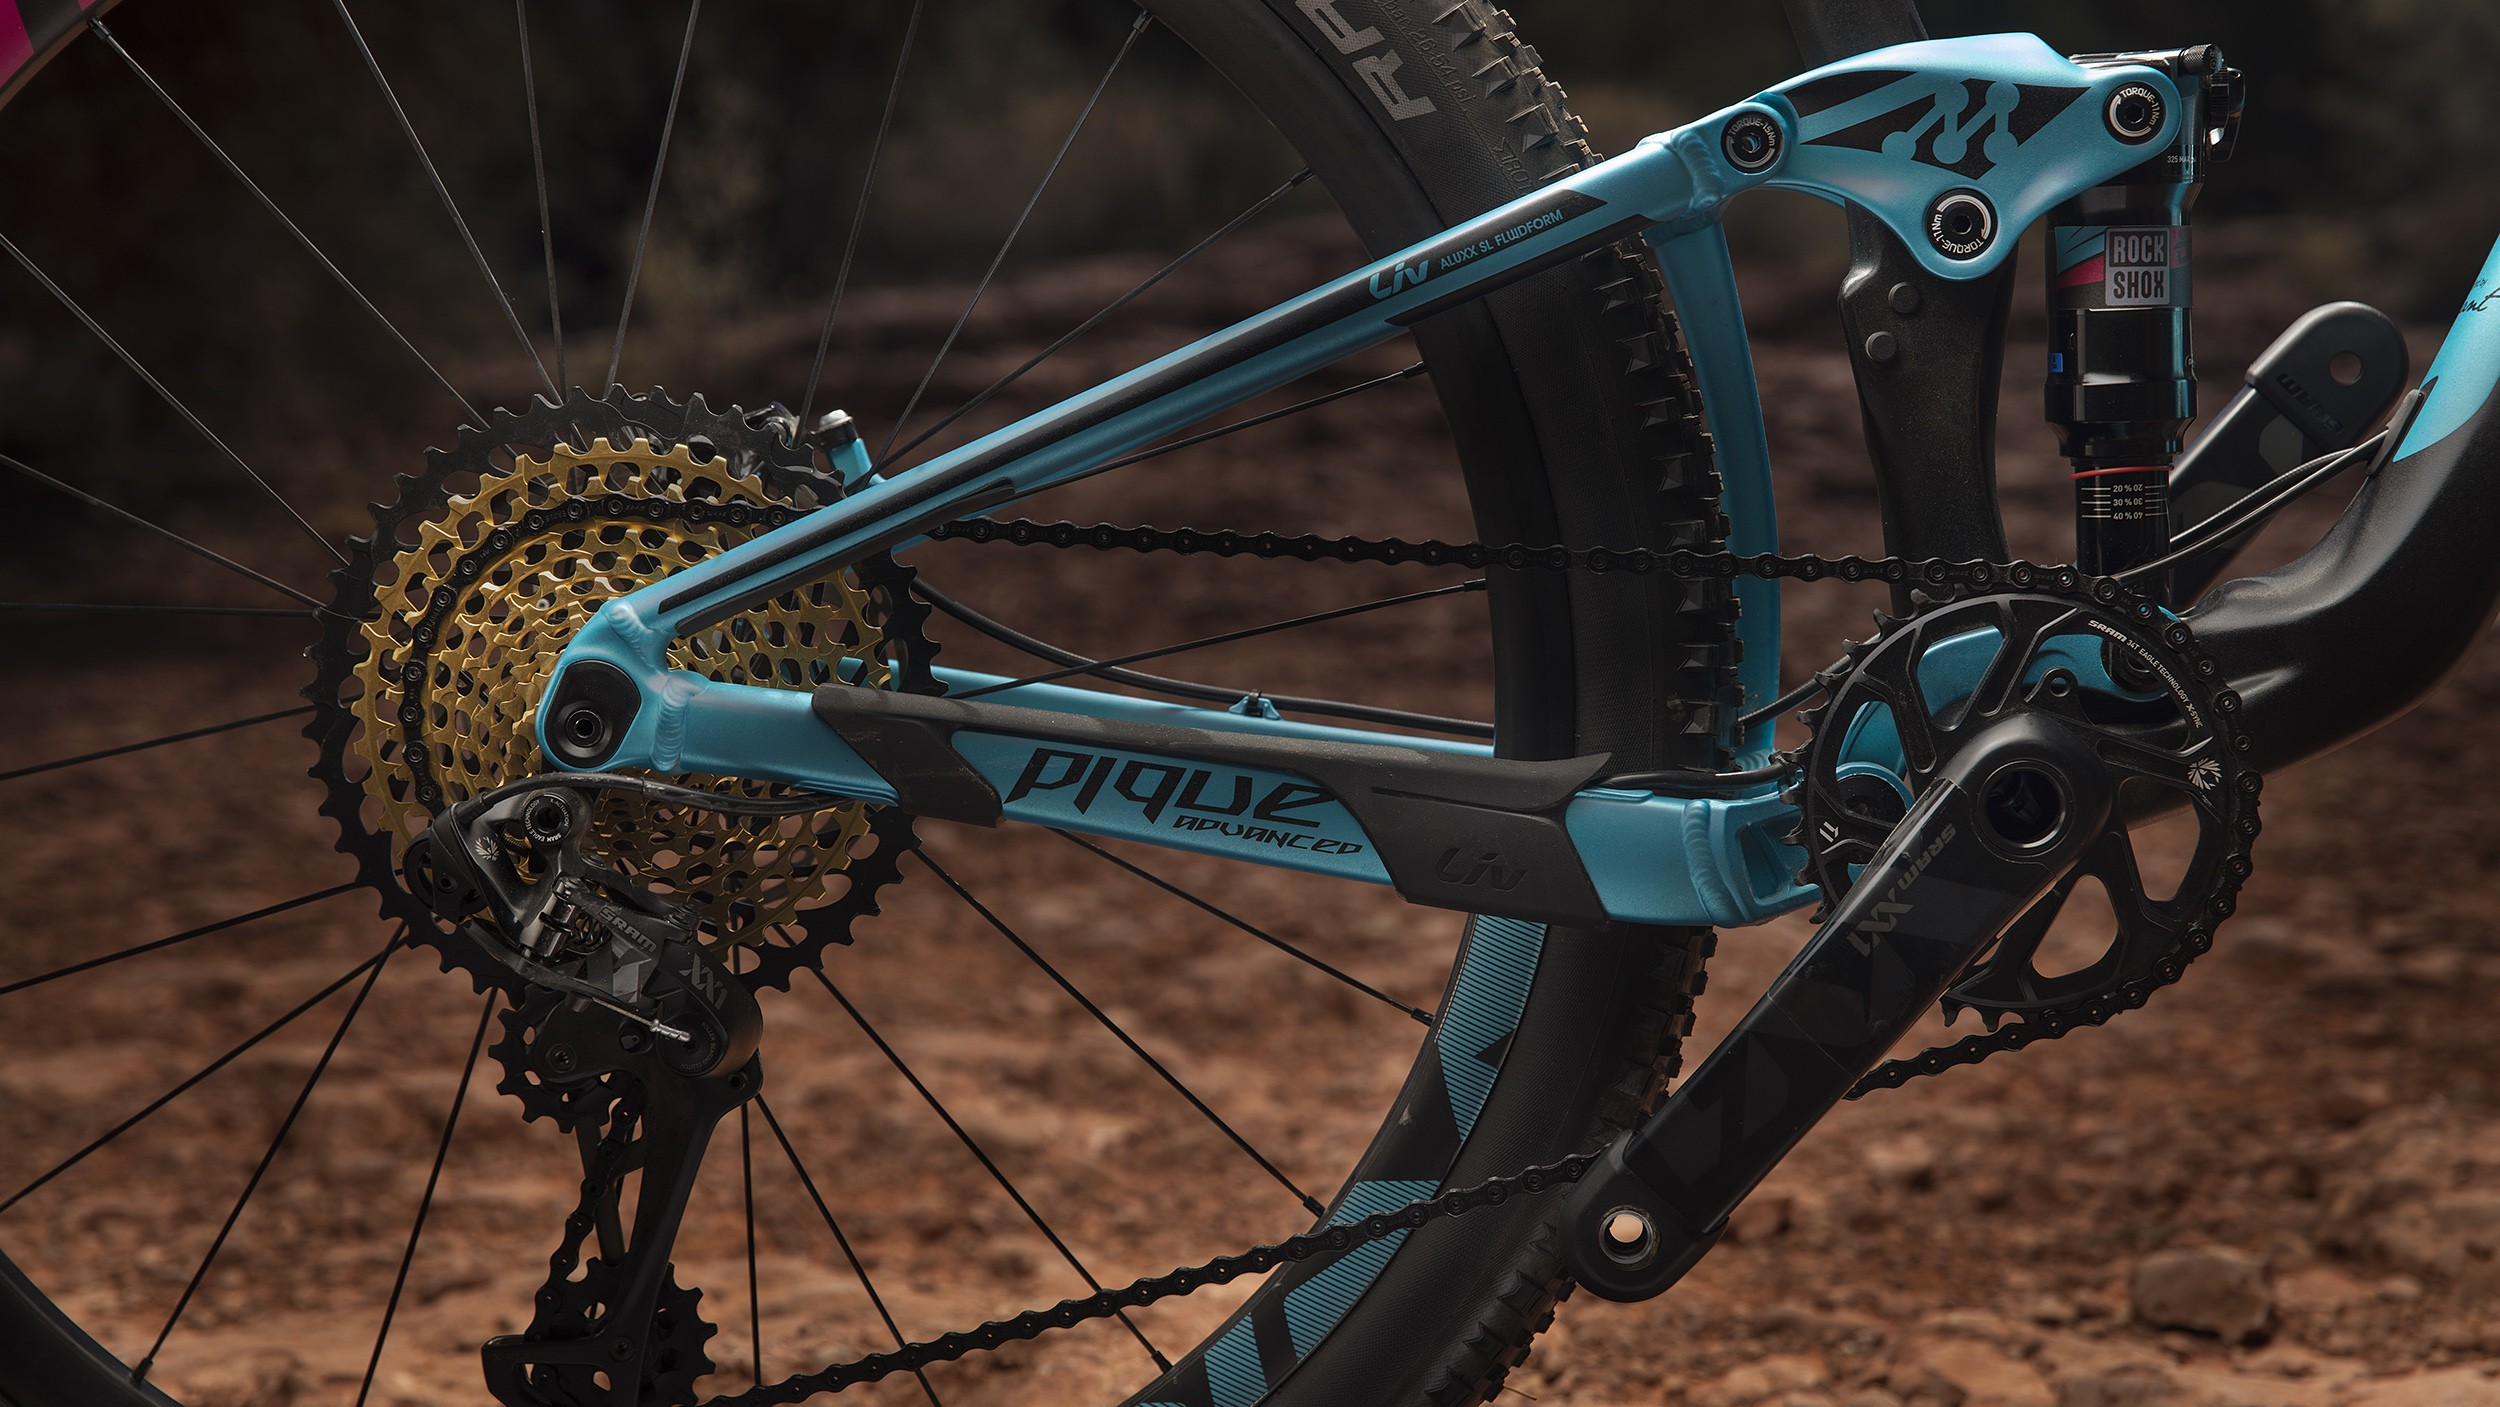 The Pique Advanced 0 has the new SRAM XX1 Eagle 12-speed groupset